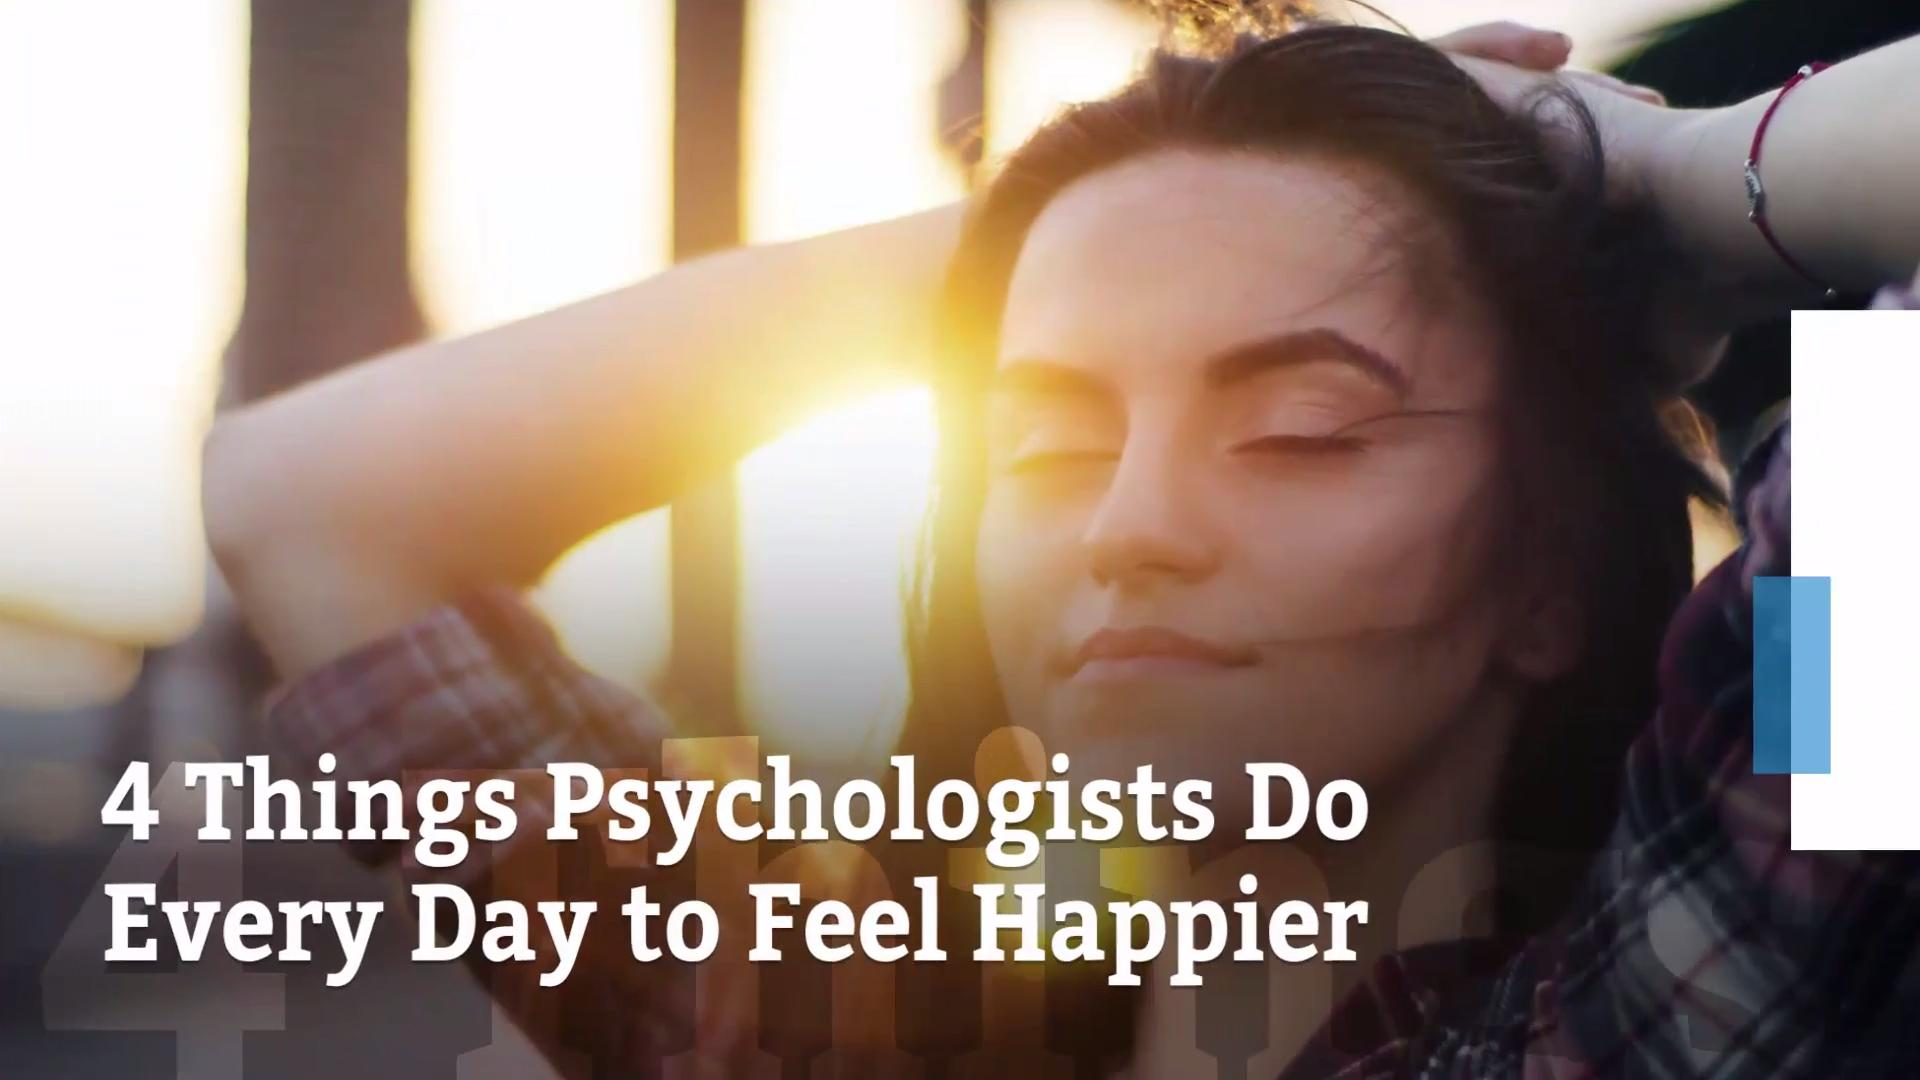 4 Things Psychologists Do Everyday to Feel Happier